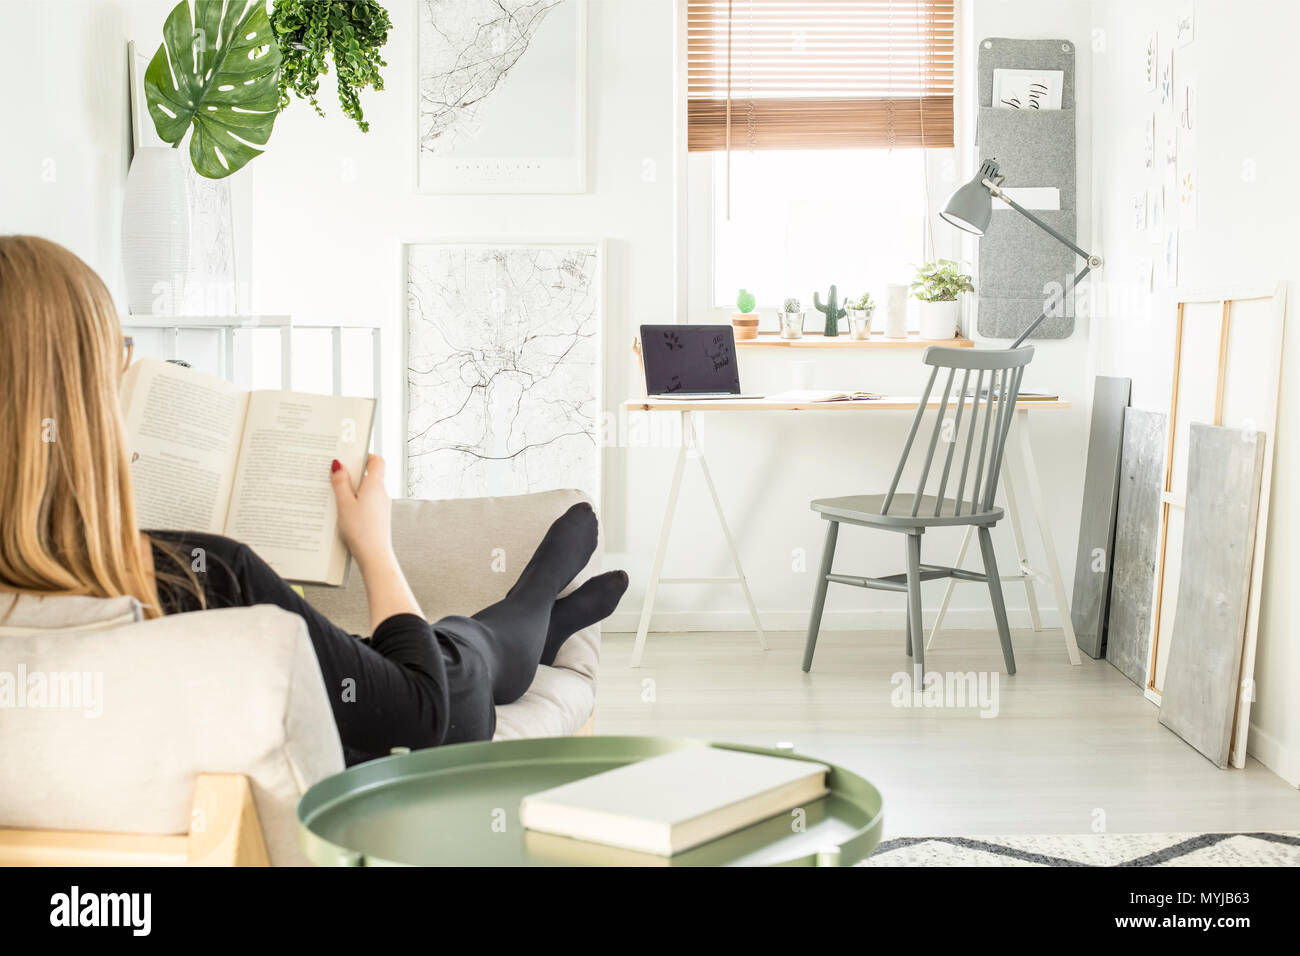 Home Office With Sofa